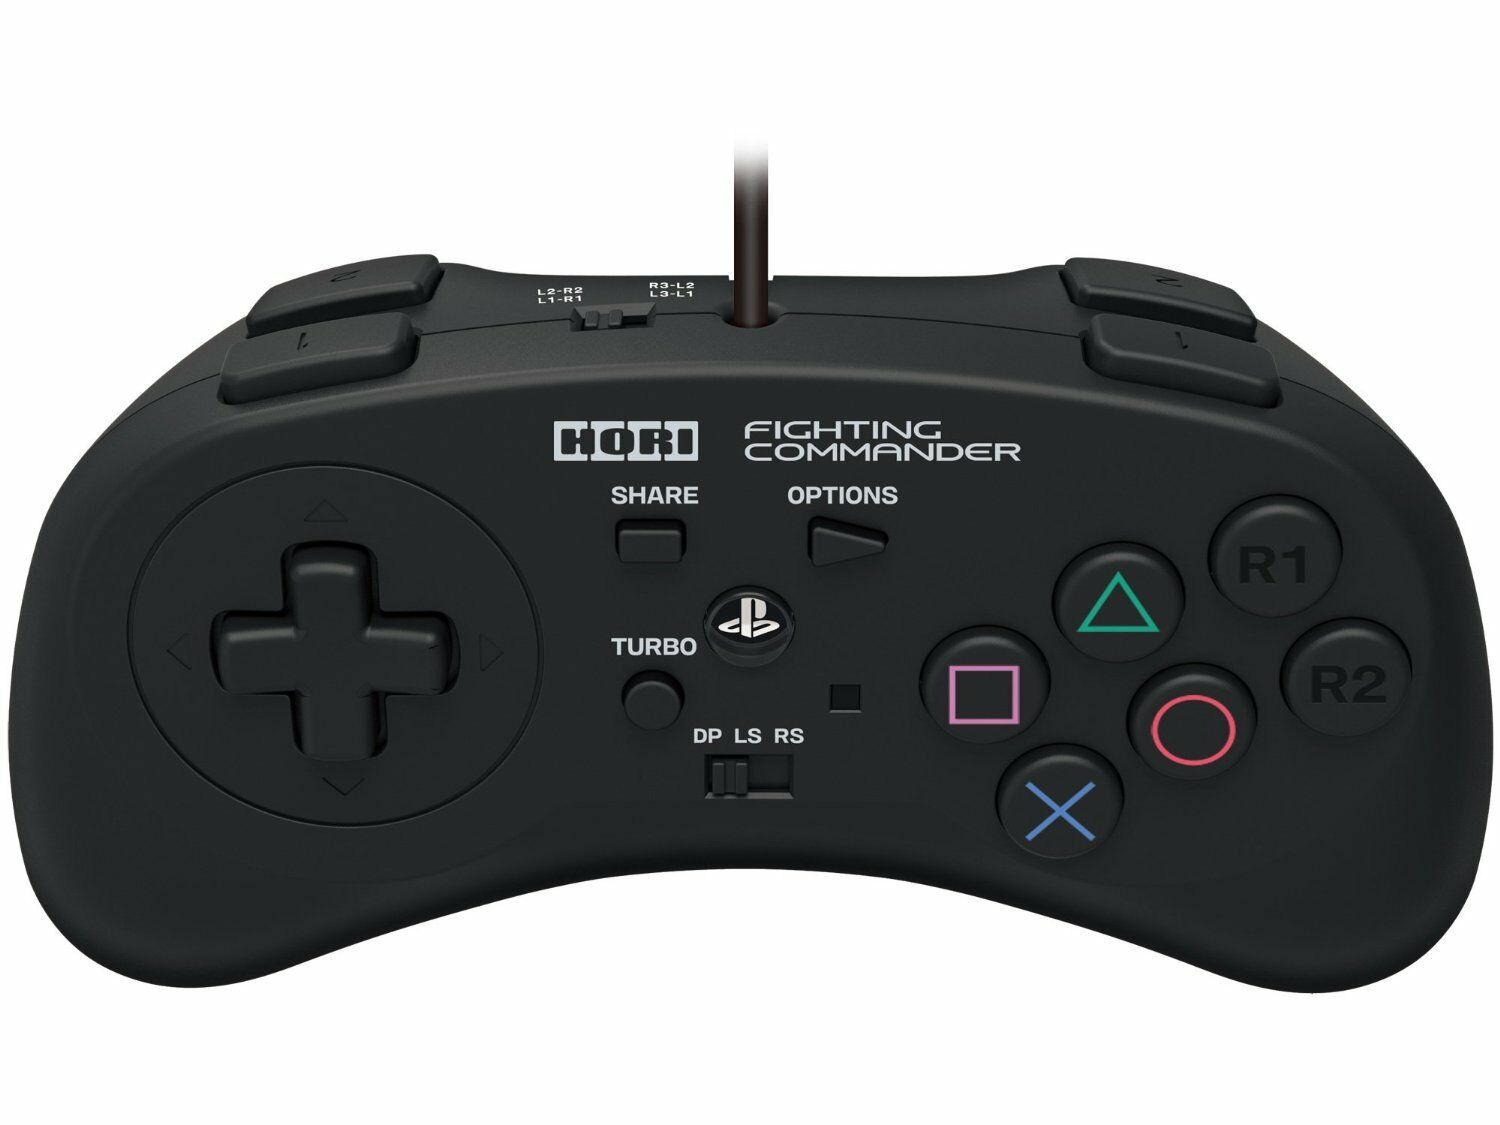 Hori Fighting Commander Controller Gamepad for PlayStation